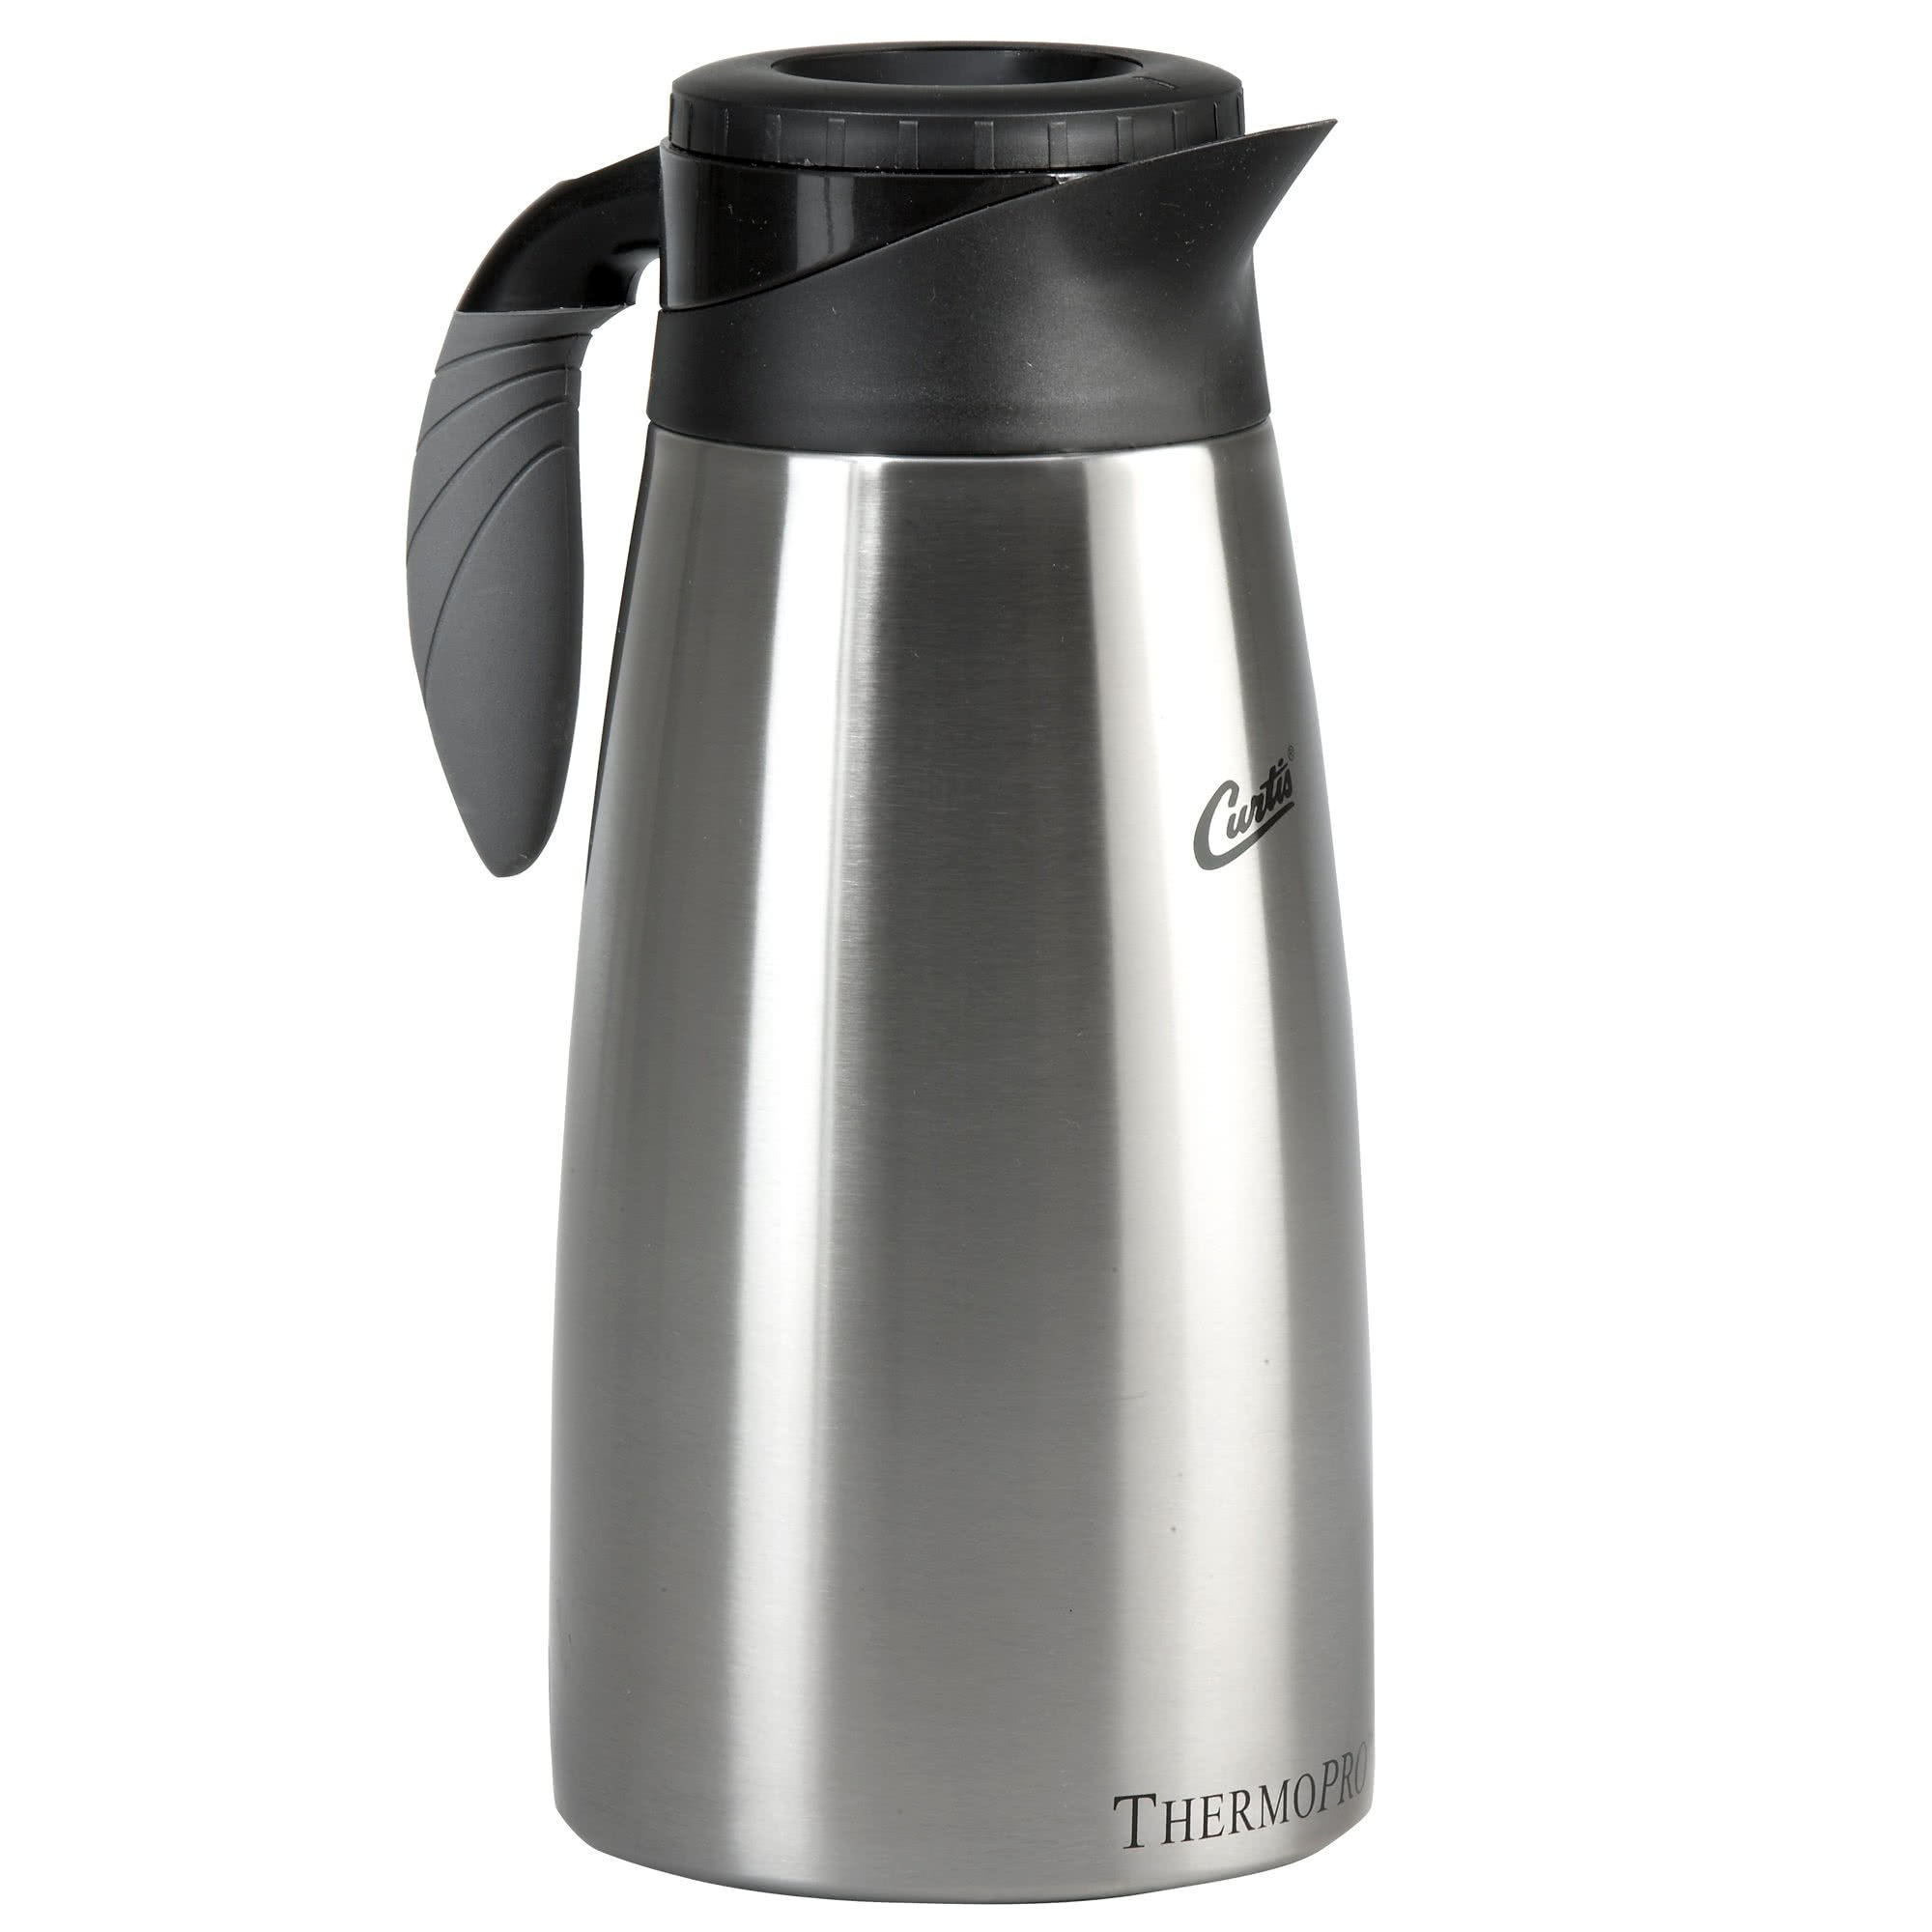 TableTop King TLXP1901S000 1.9 Liter Stainless Steel Coffee Server with Liner and Brew Thru Lid - 6/Case